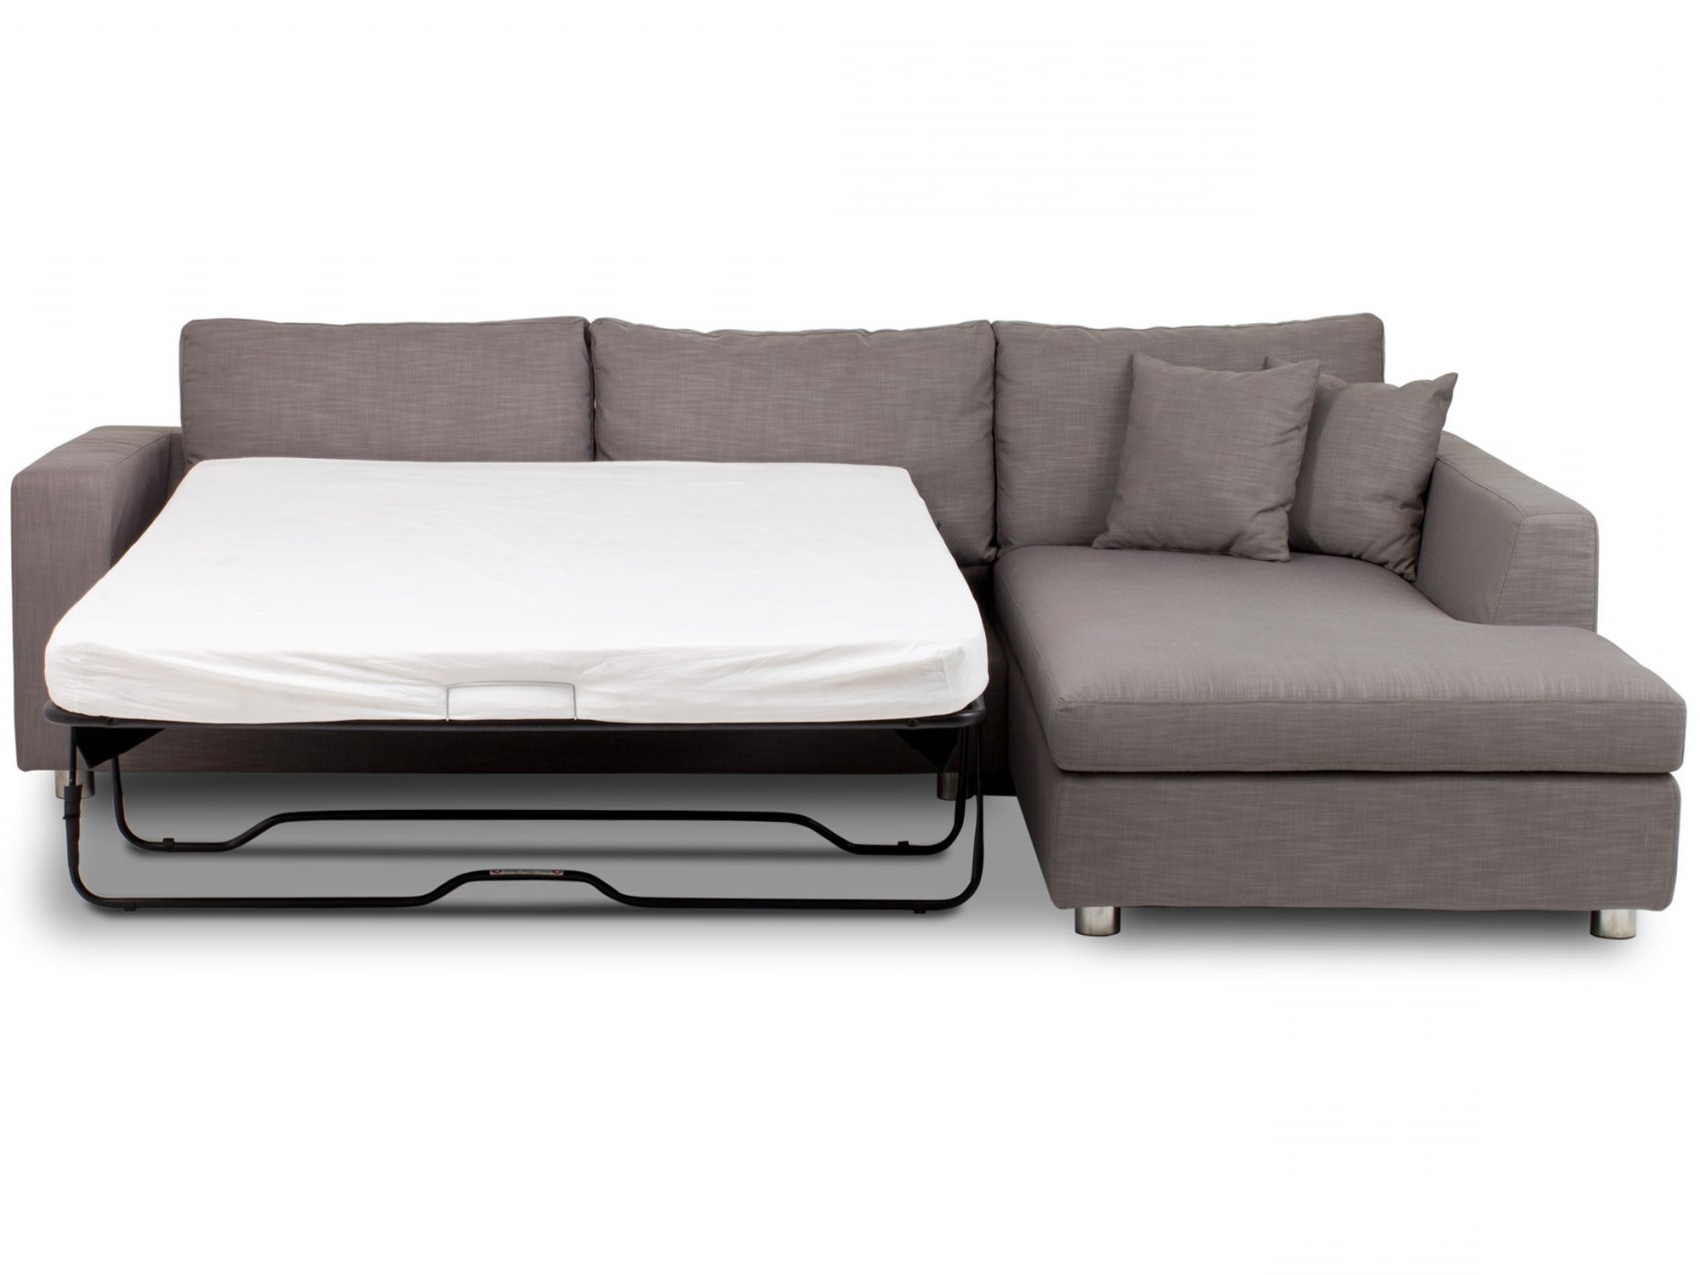 Famous Vivacious Chaise Sofa Bed With Softly Bed Foam For For Chaise With Sofa Beds With Chaise (View 3 of 15)